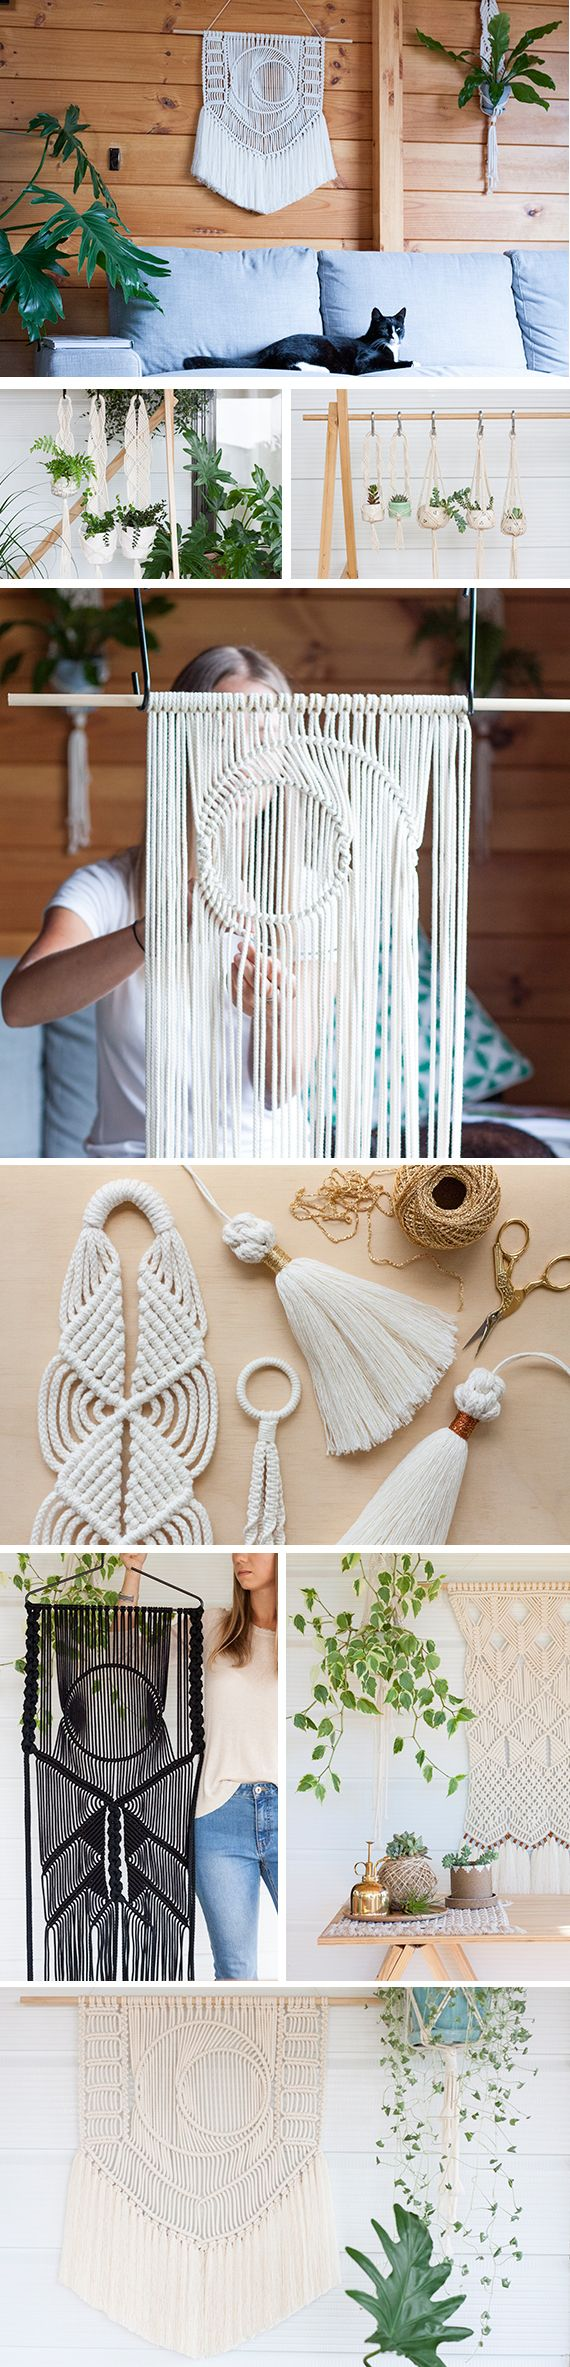 """""""She's still such a big source of inspiration for me — just the way her mind works, with being able to meld, say, knitting and weaving and macramé all together."""" For Nalani, macramé is all in the family. After learning the skill from her mother, she launched Knotty Bloom. Read her story."""